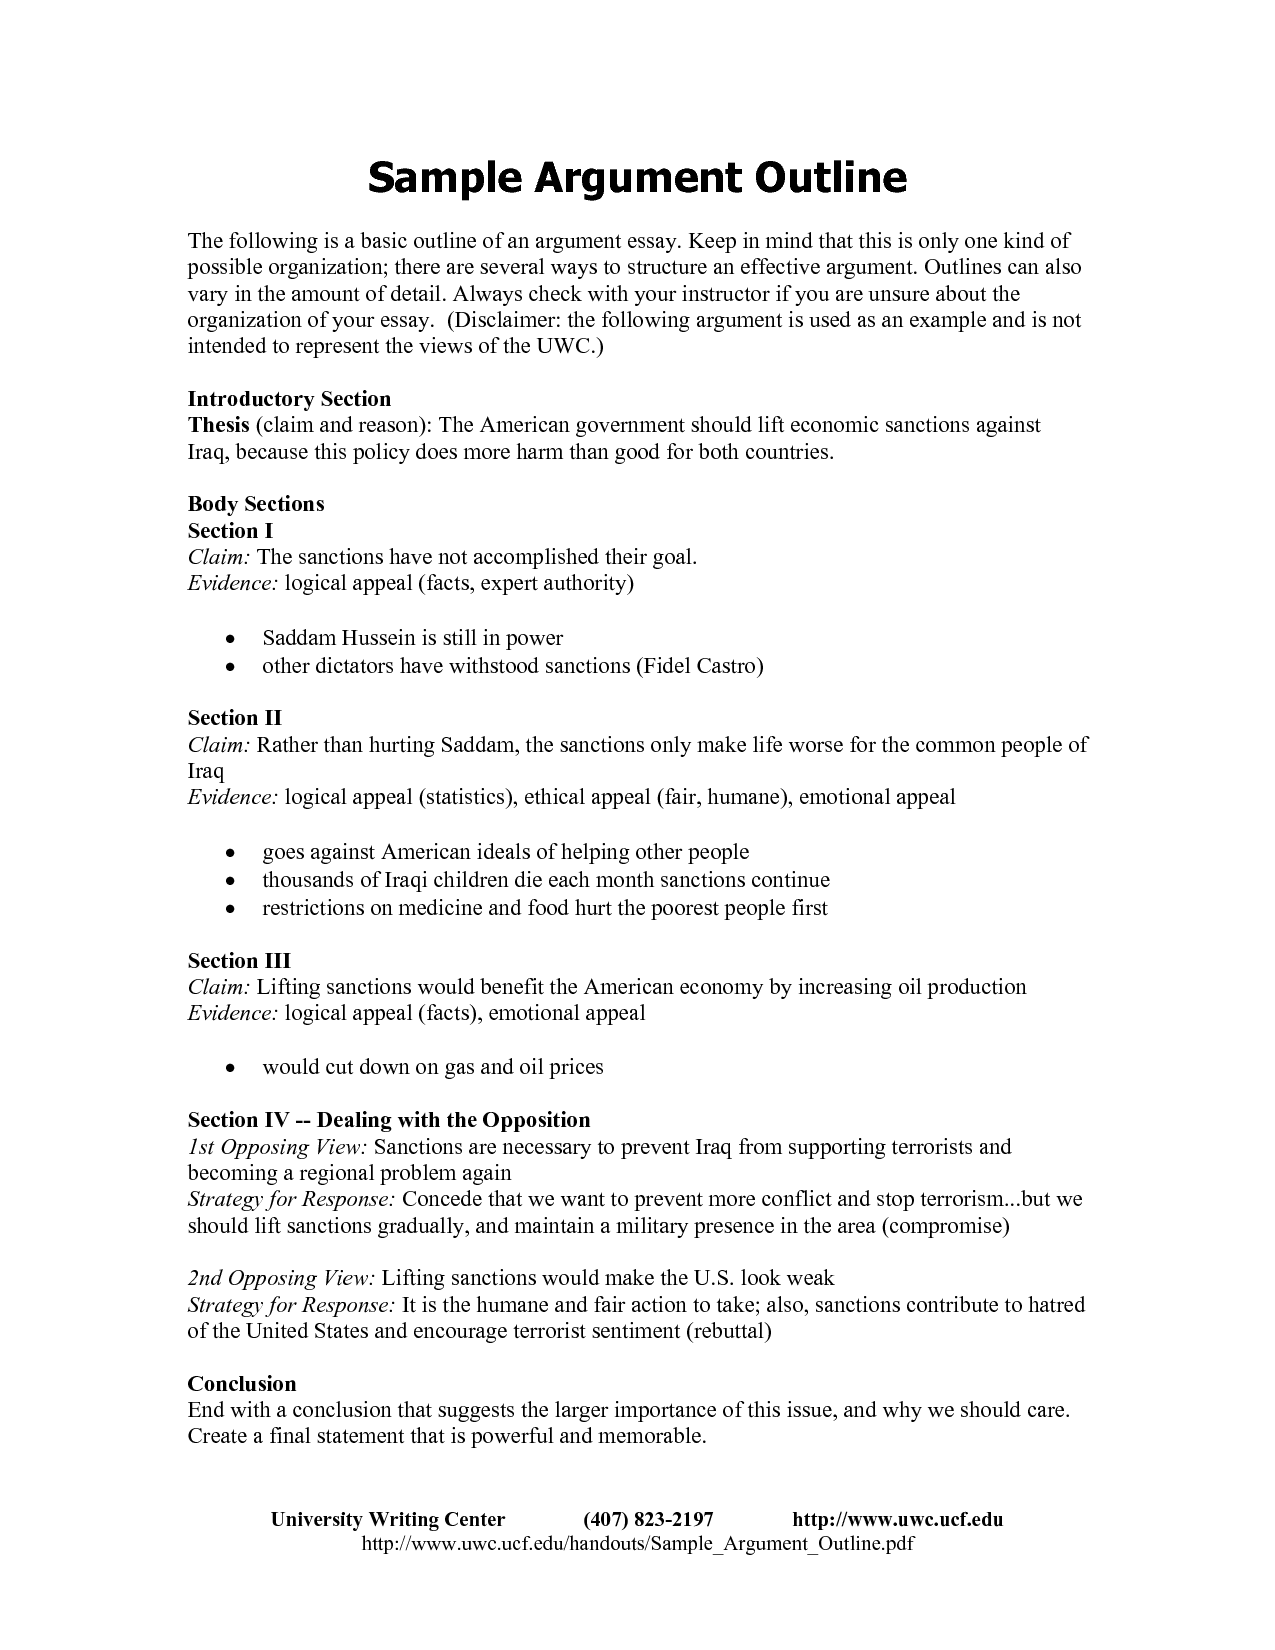 004 Persuasive Essay20per Outline Worksheet Free Printables Research Topics About Health Introduction Sample20 Beautiful Paper Writing Full